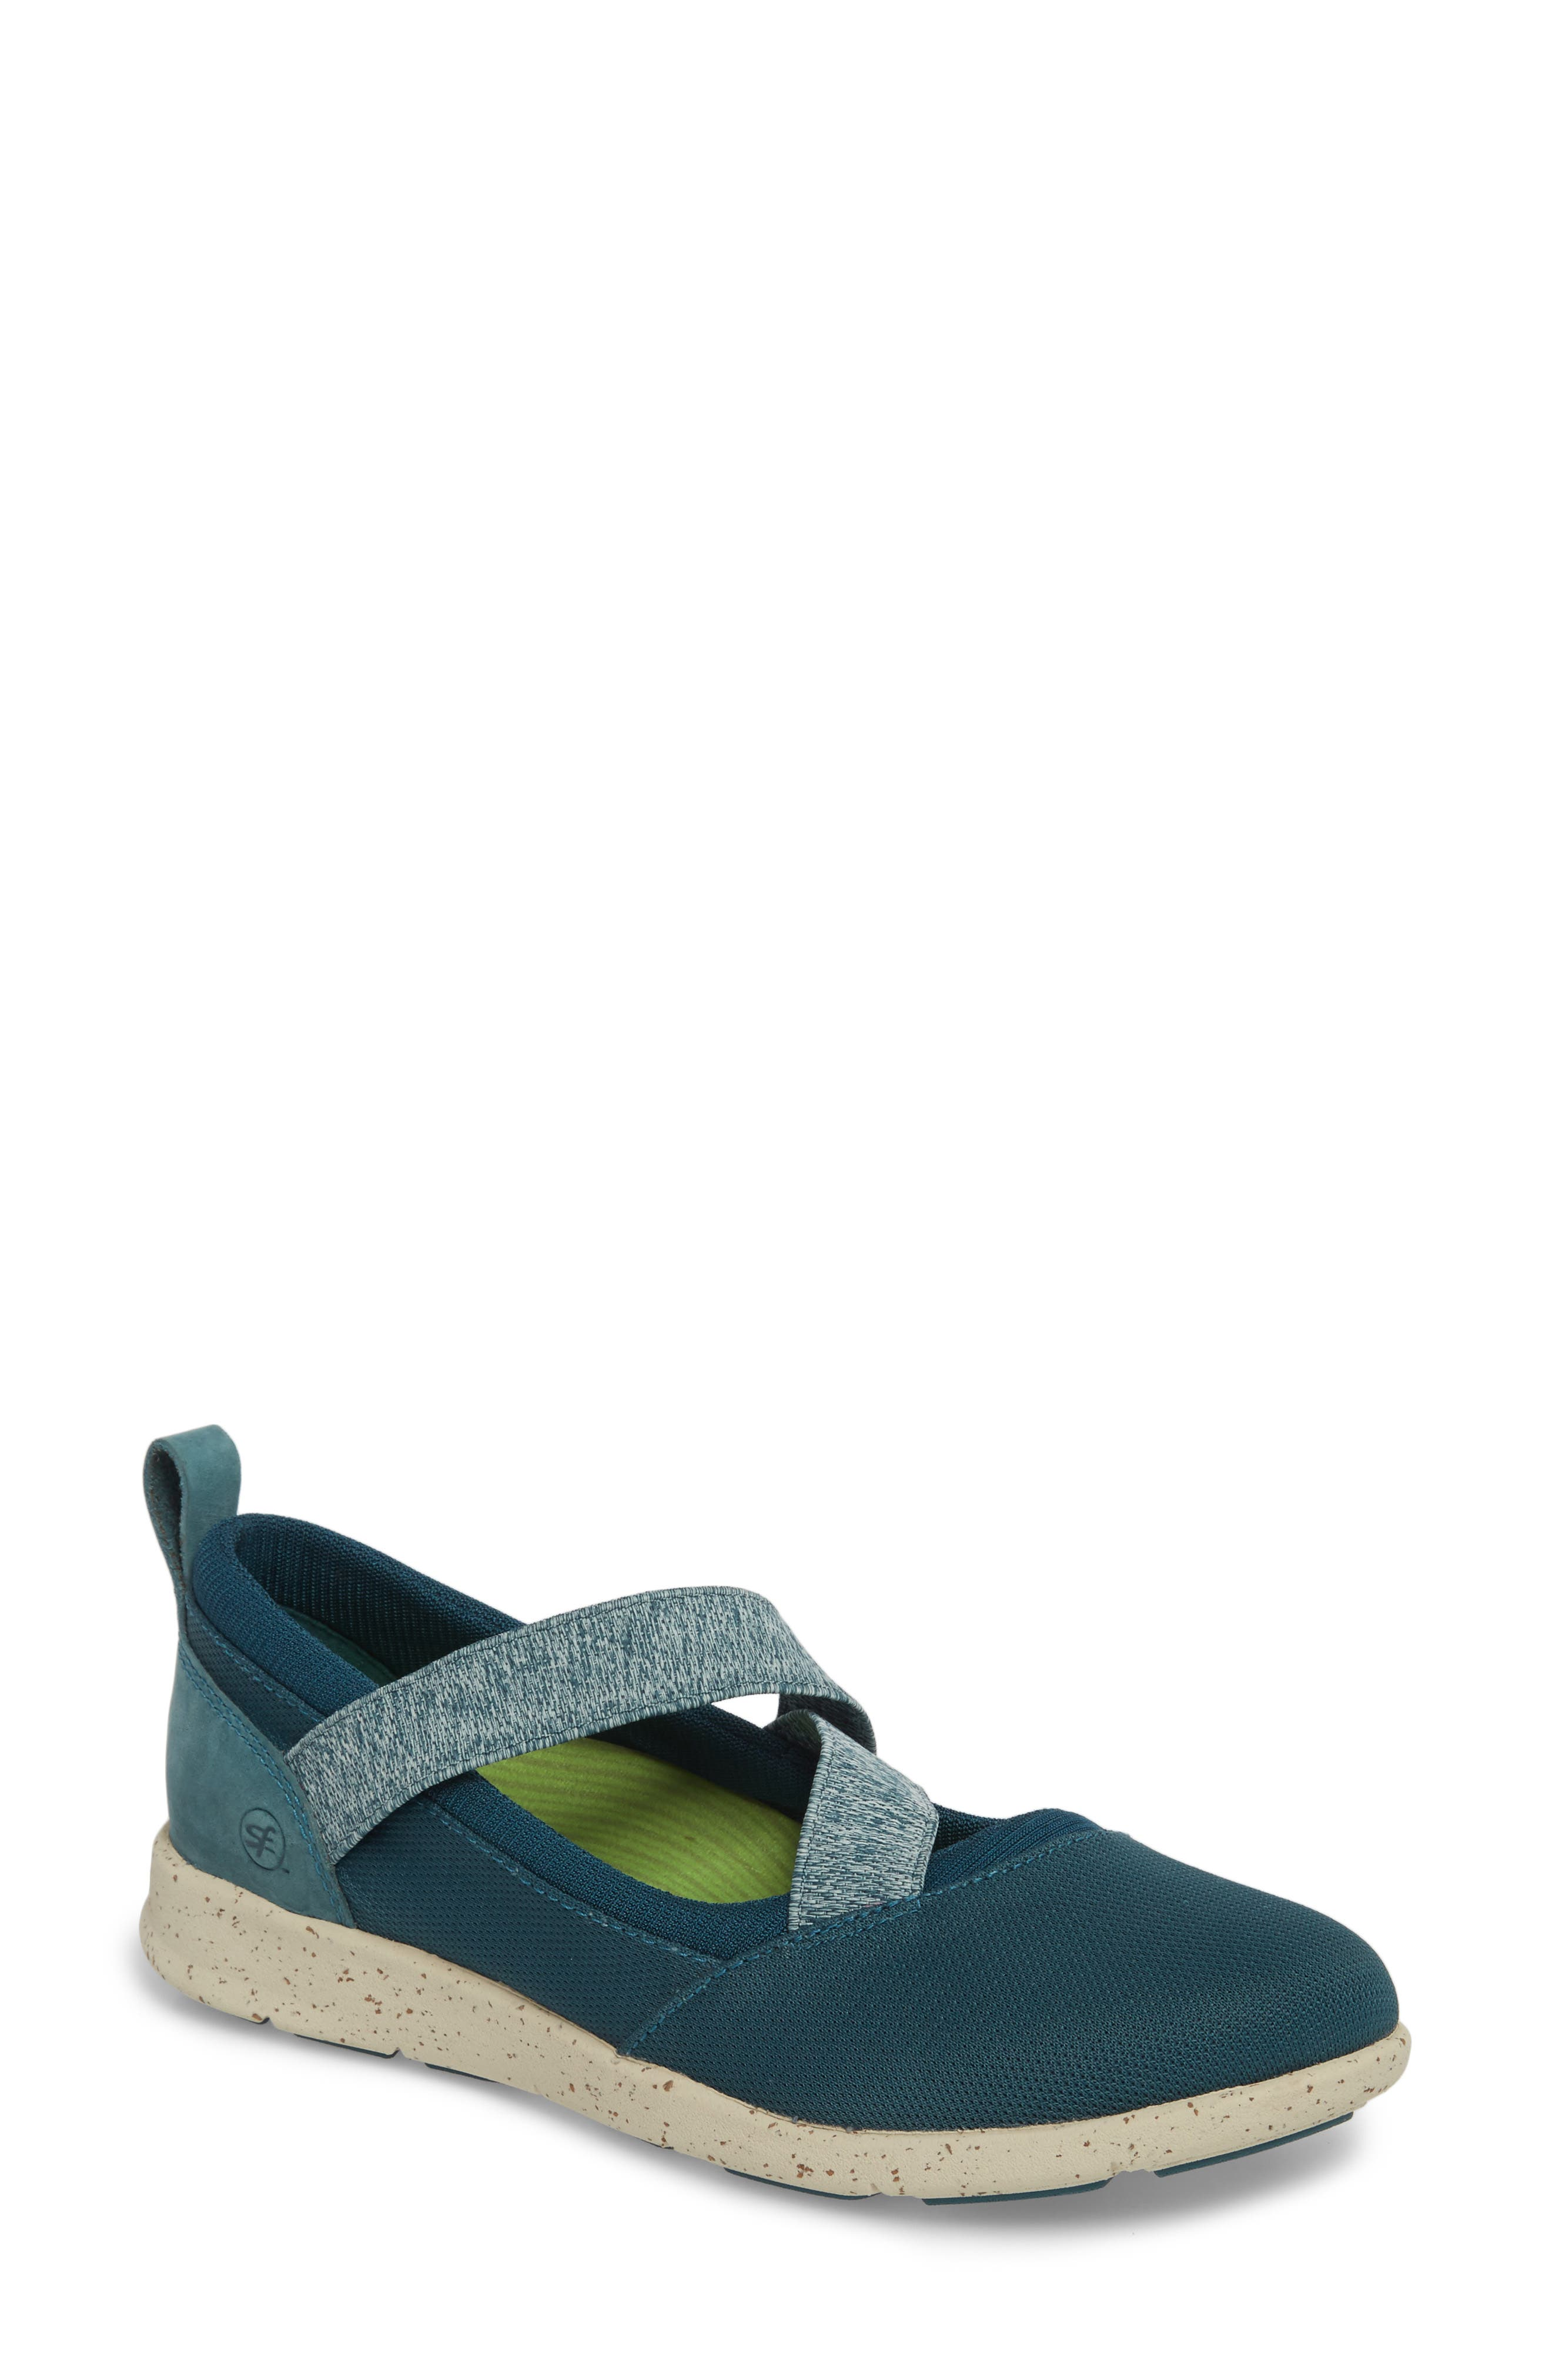 Palisade Sneaker,                         Main,                         color, Balsam Blue Leather